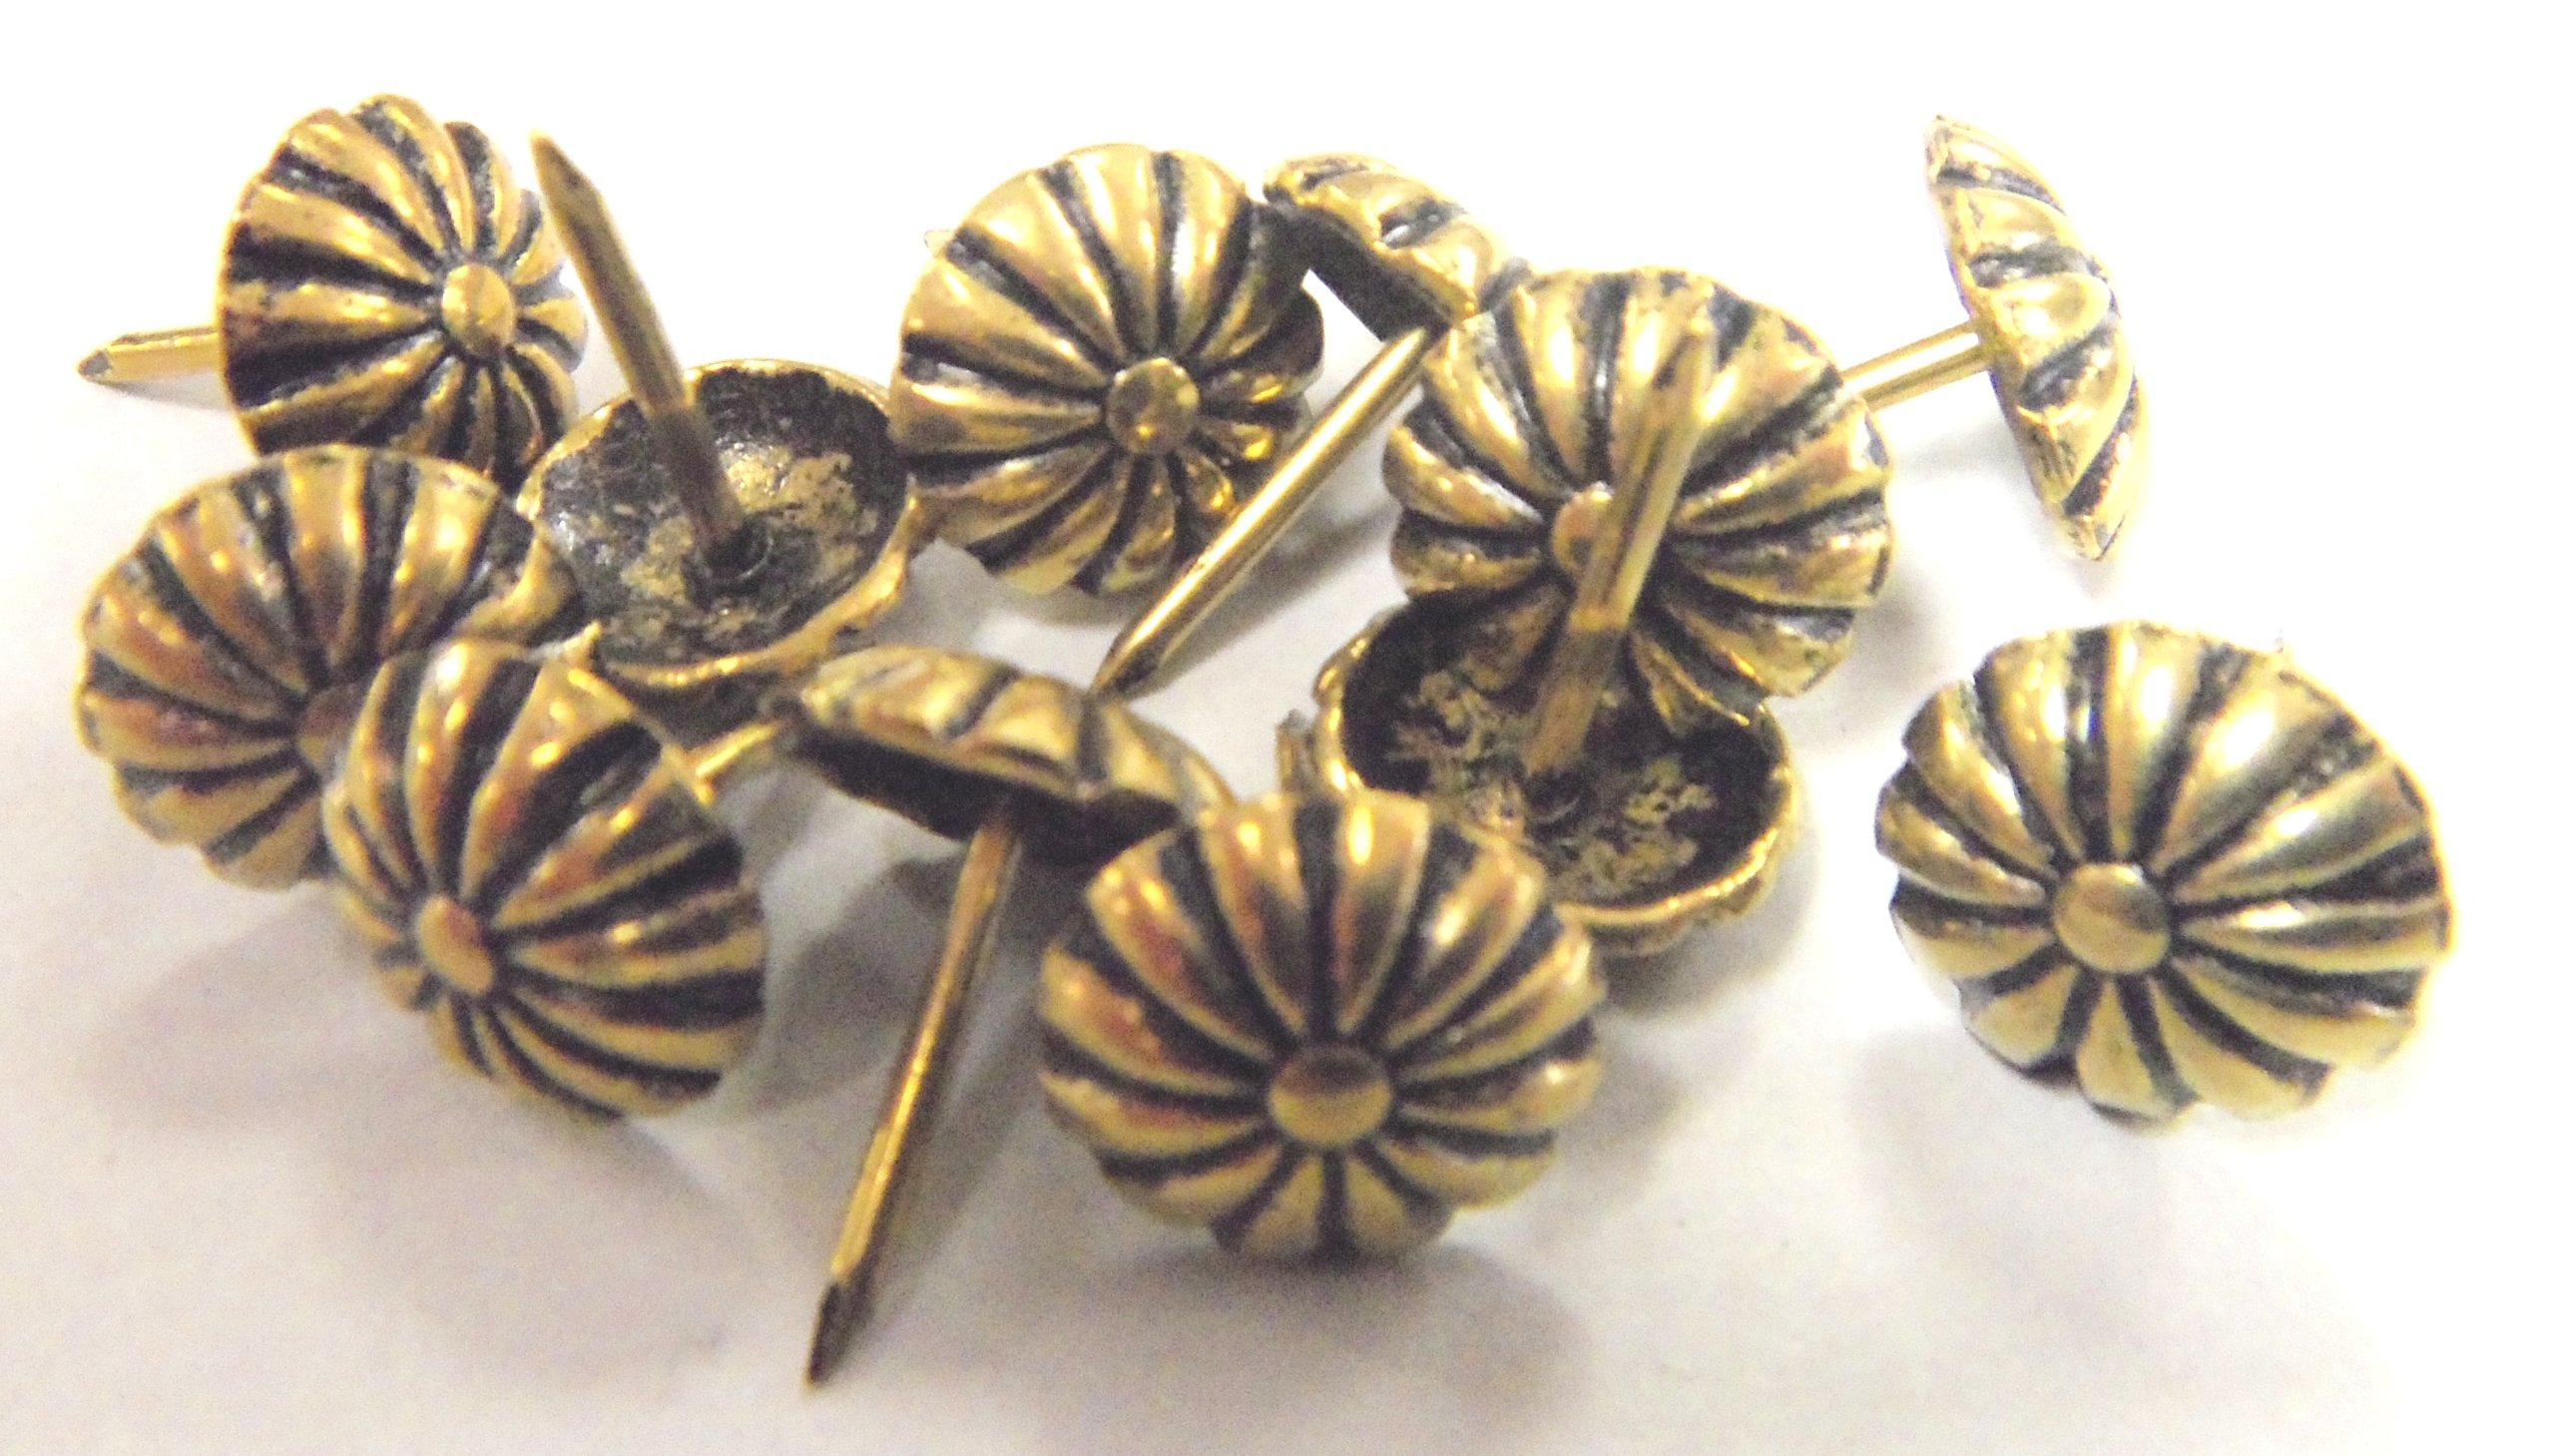 Rosette Floral Daisy Head Decorative Tack Nail Upholstery Stud 1,000pcs Antique Gold